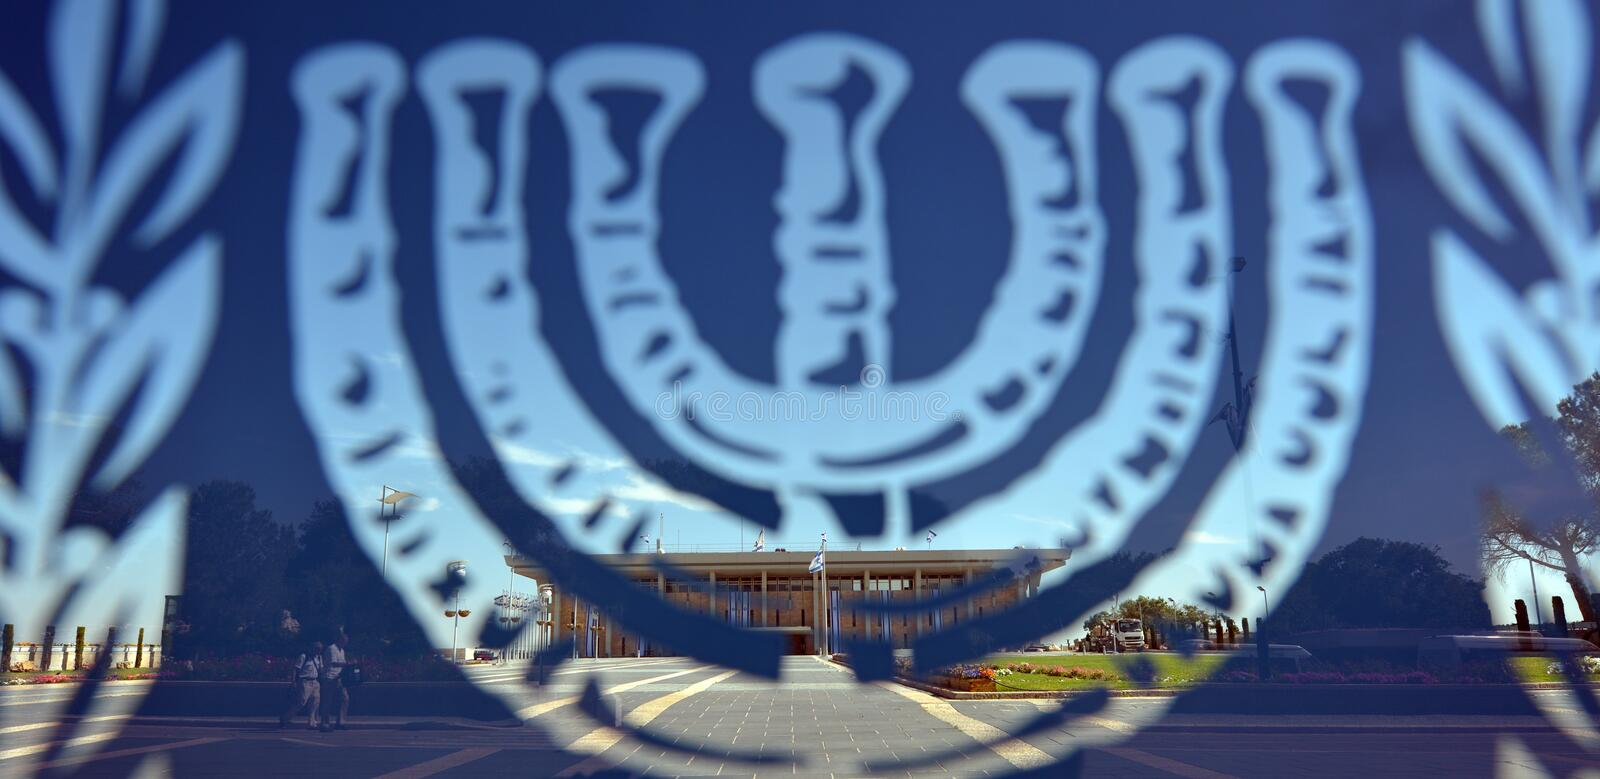 The Israeli parliament building in Jerusalem, Israel stock photography